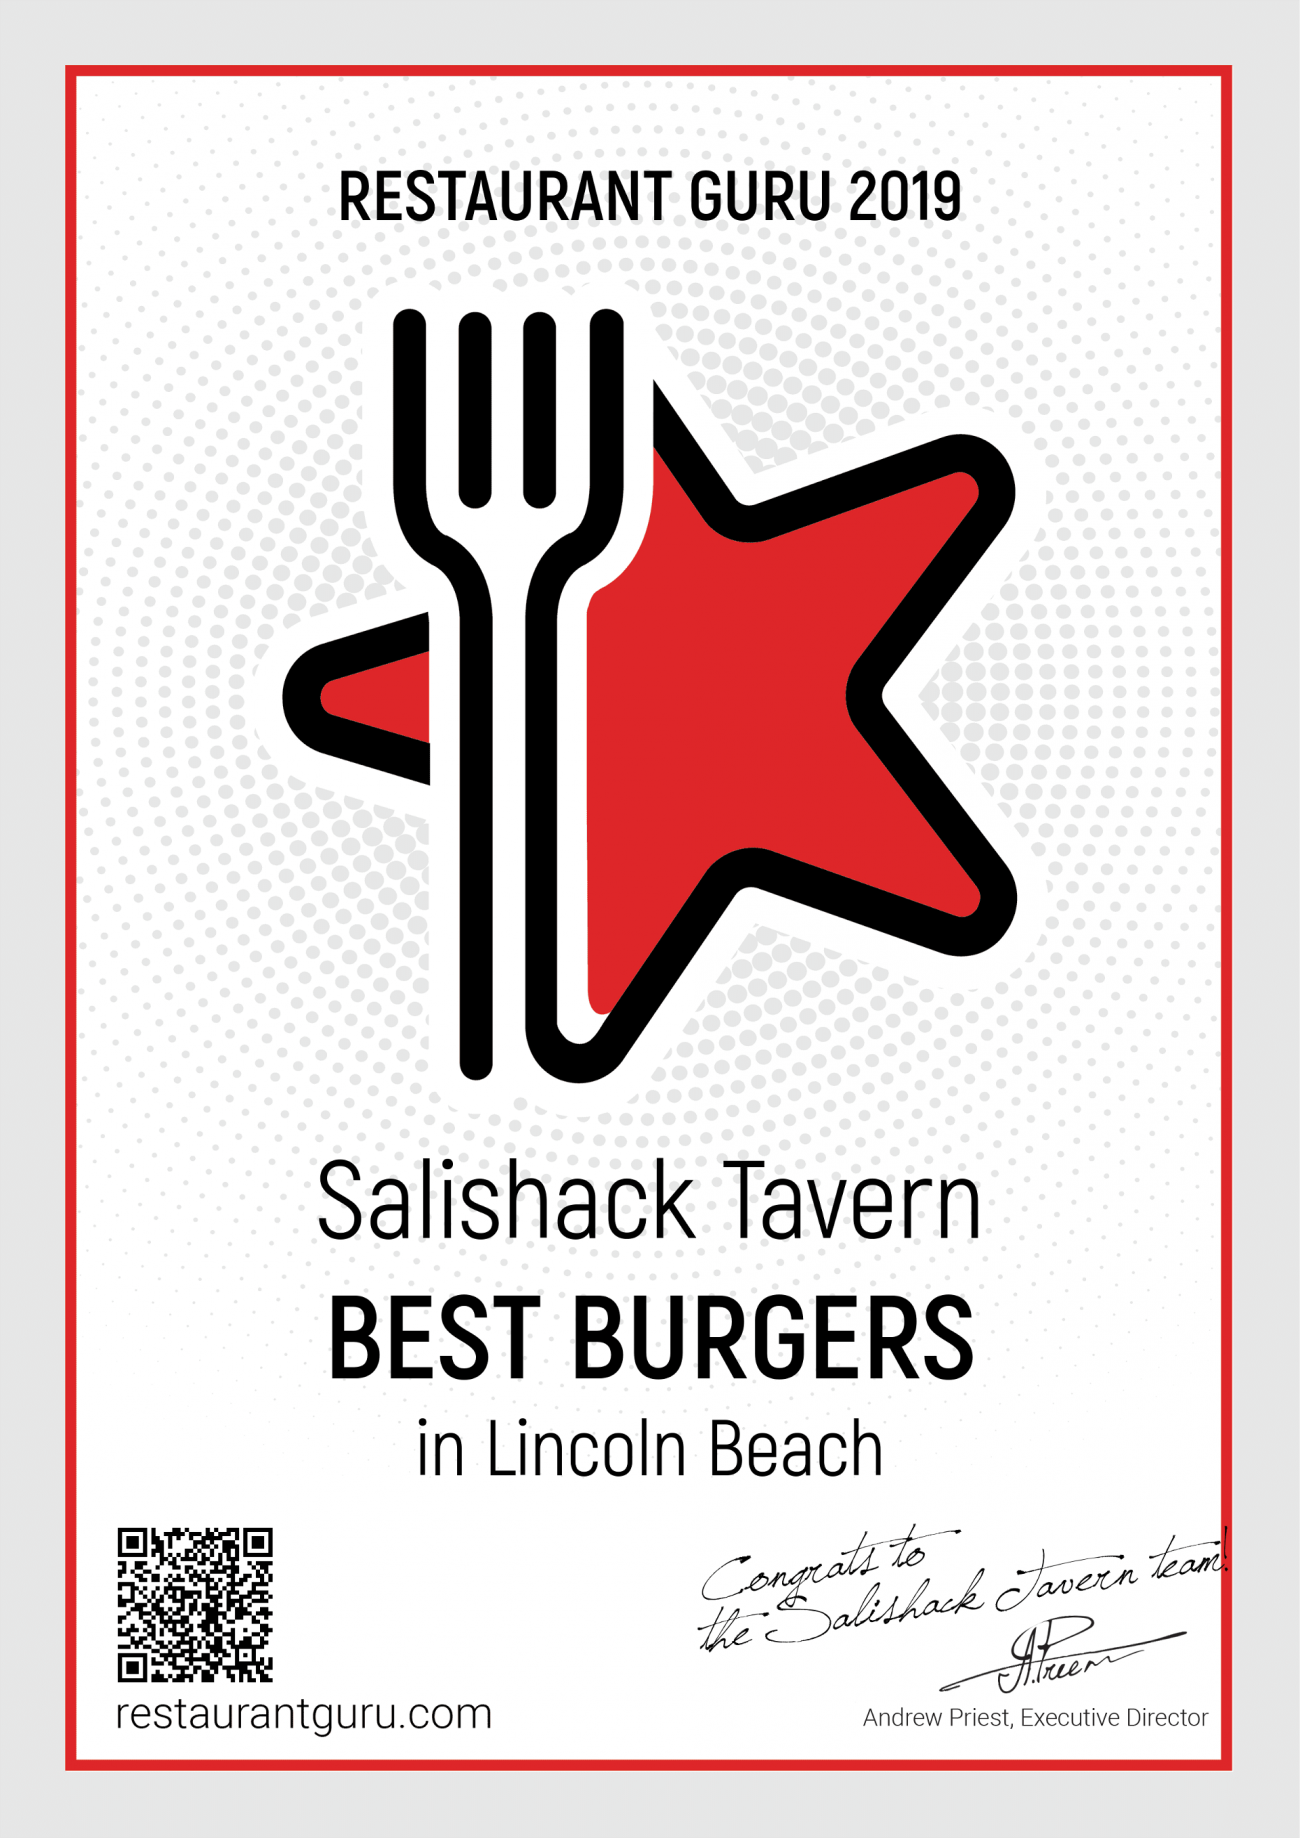 Voted #1 Best Burgers by Restaurant Guru (2019)